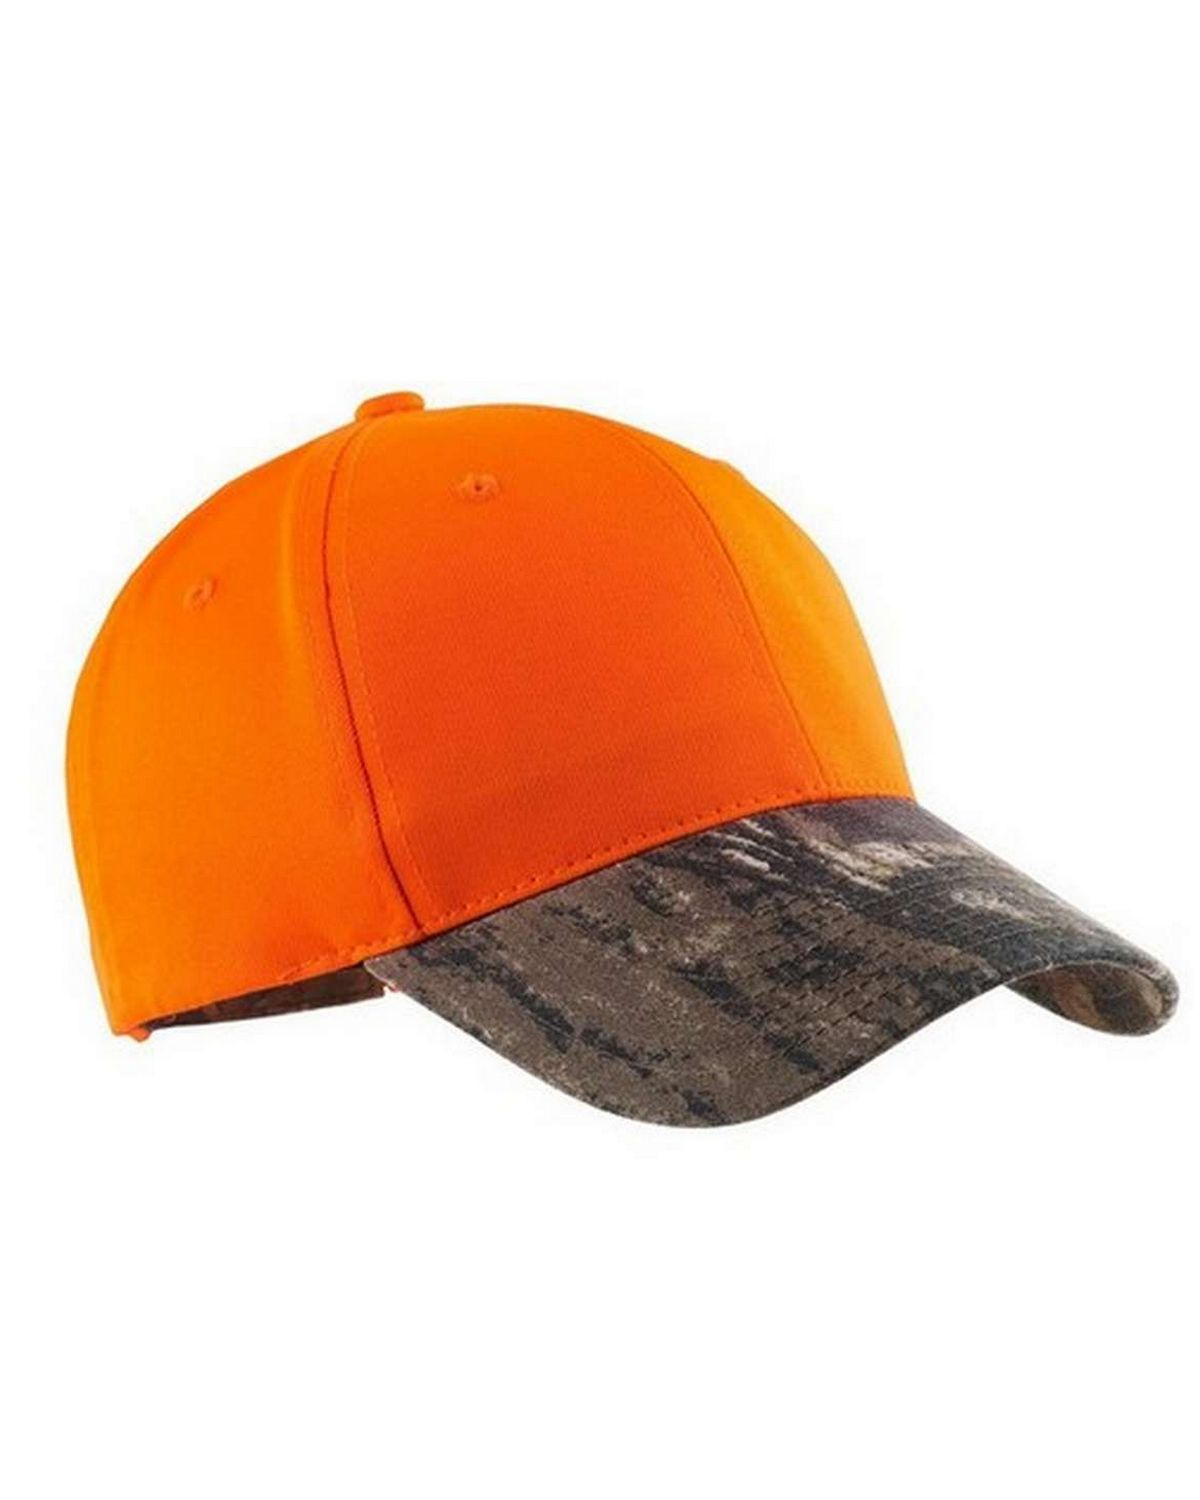 Port Authority C804 Safety Cap with Camo Brim